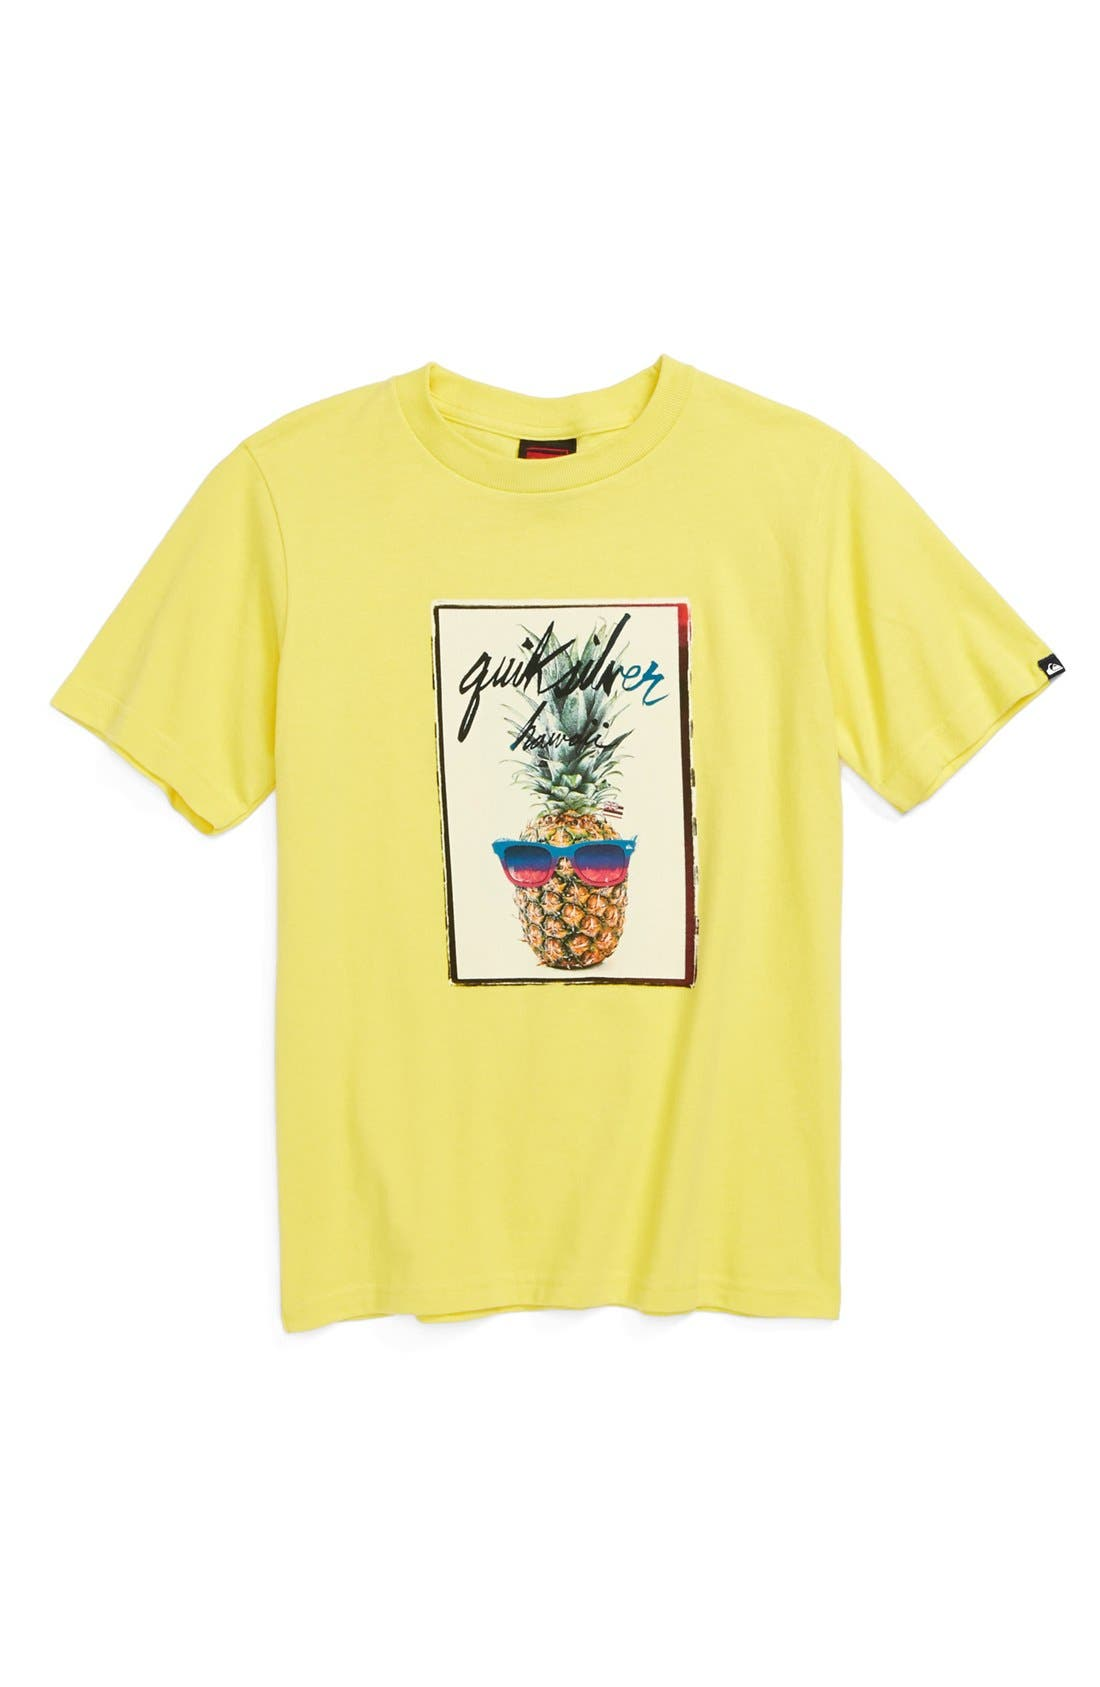 Alternate Image 1 Selected - Quiksilver 'Pine On' Graphic T-Shirt (Big Boys)